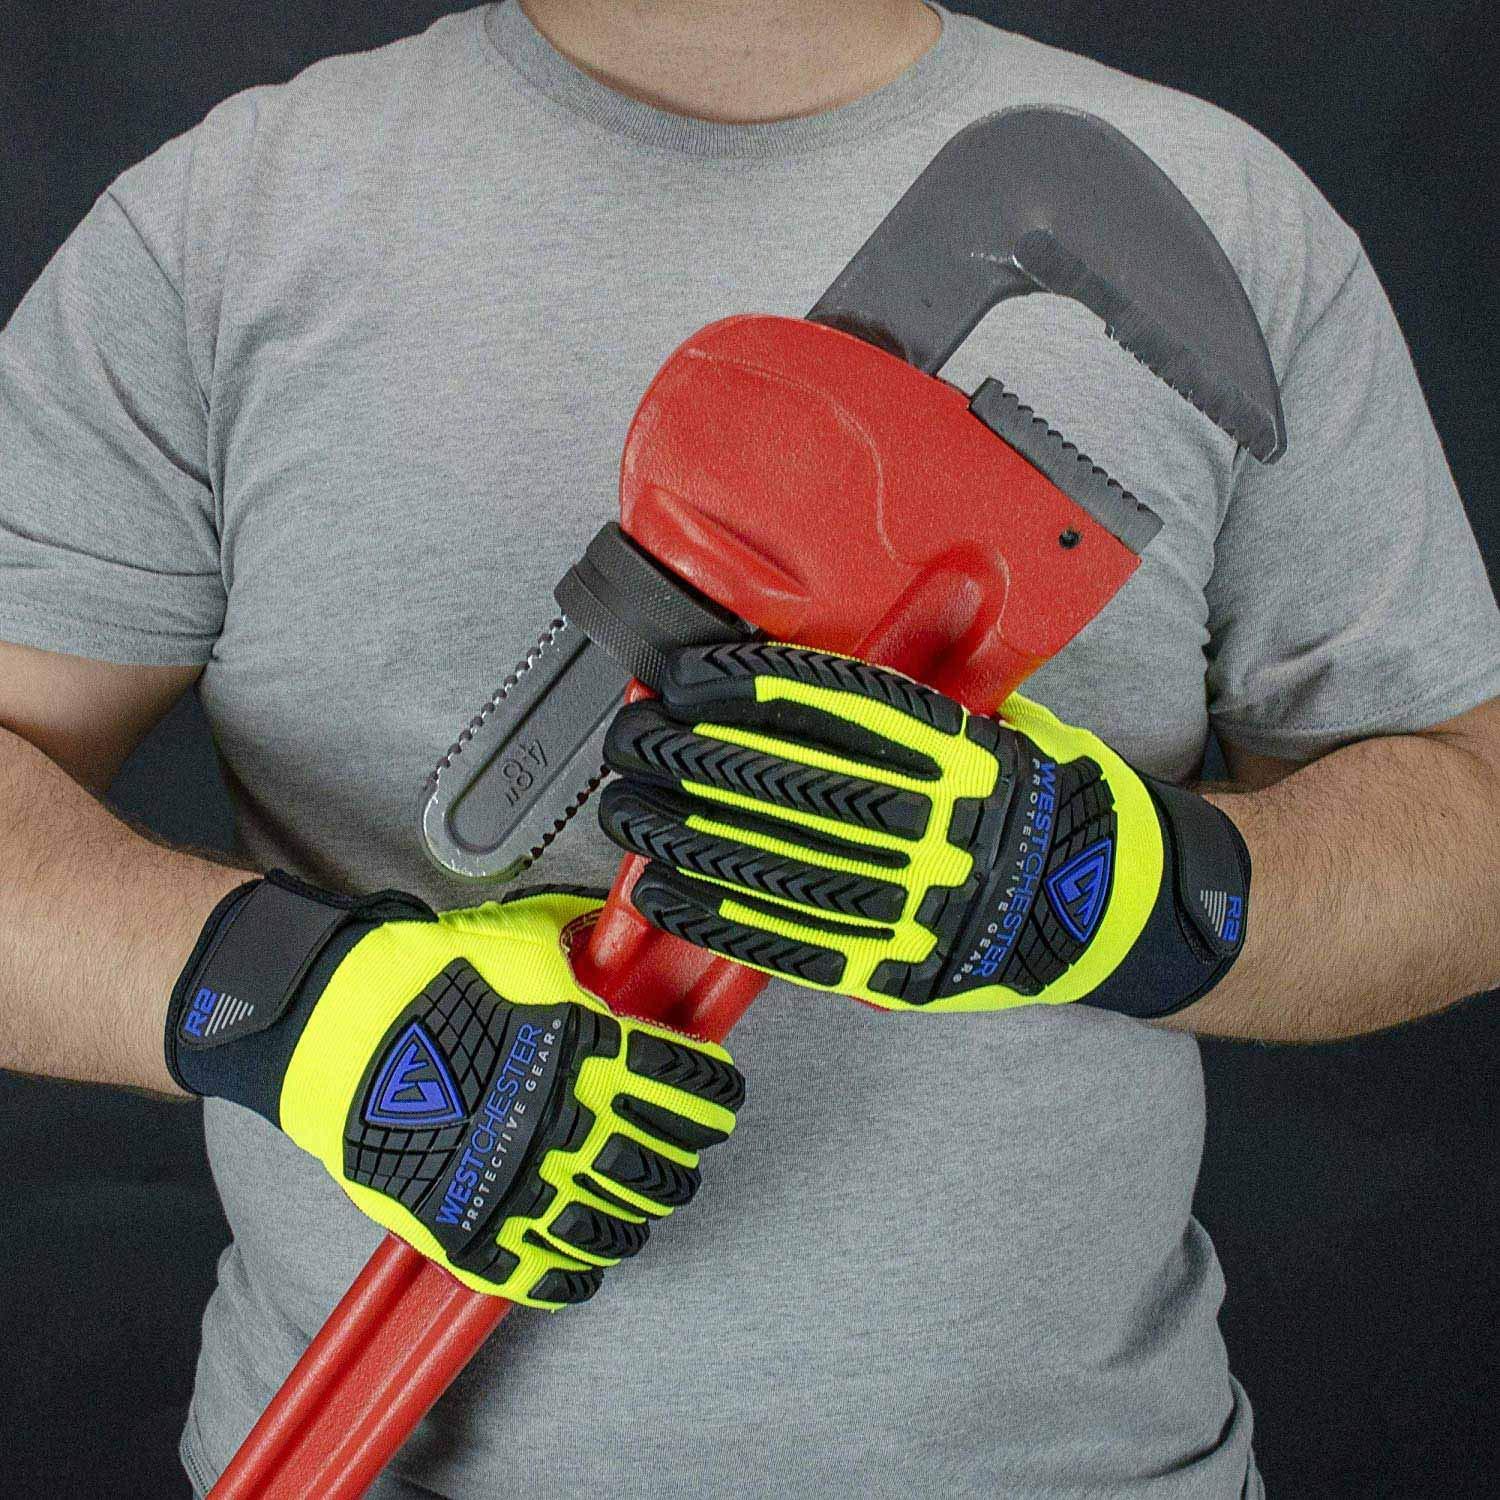 Impact Reducing Safety Gloves, Vibration & Abrasion & Cut Resistant, Ideal for Heavy Duty Safety Work like Mechanic, Garden Construction, Car Repairing Industrial, 1 Pair by KARRISM 6